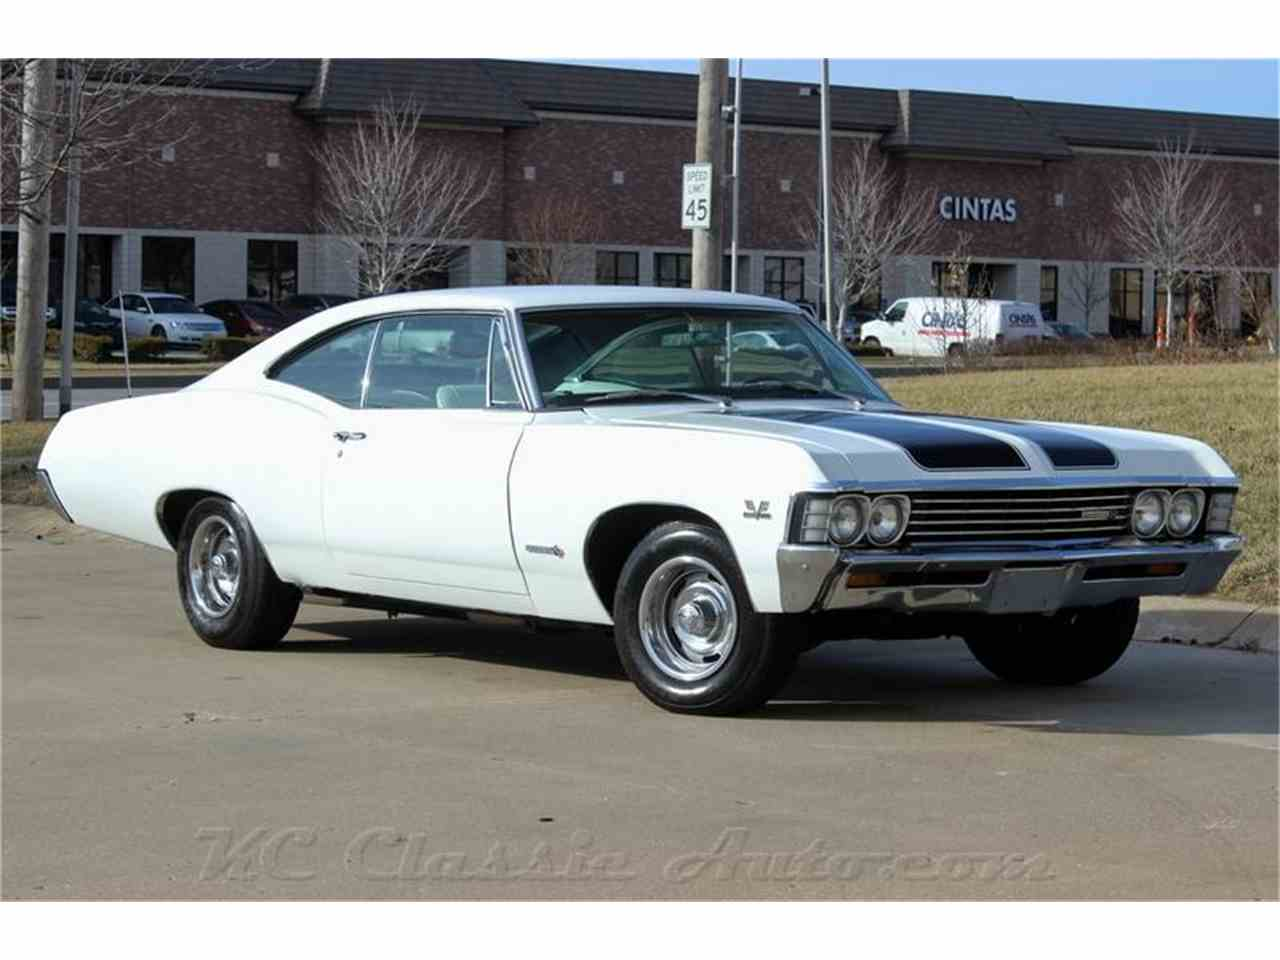 All Chevy chevy 1967 : All Chevy » 1967 Chevrolet Ss - Old Chevy Photos Collection, All ...